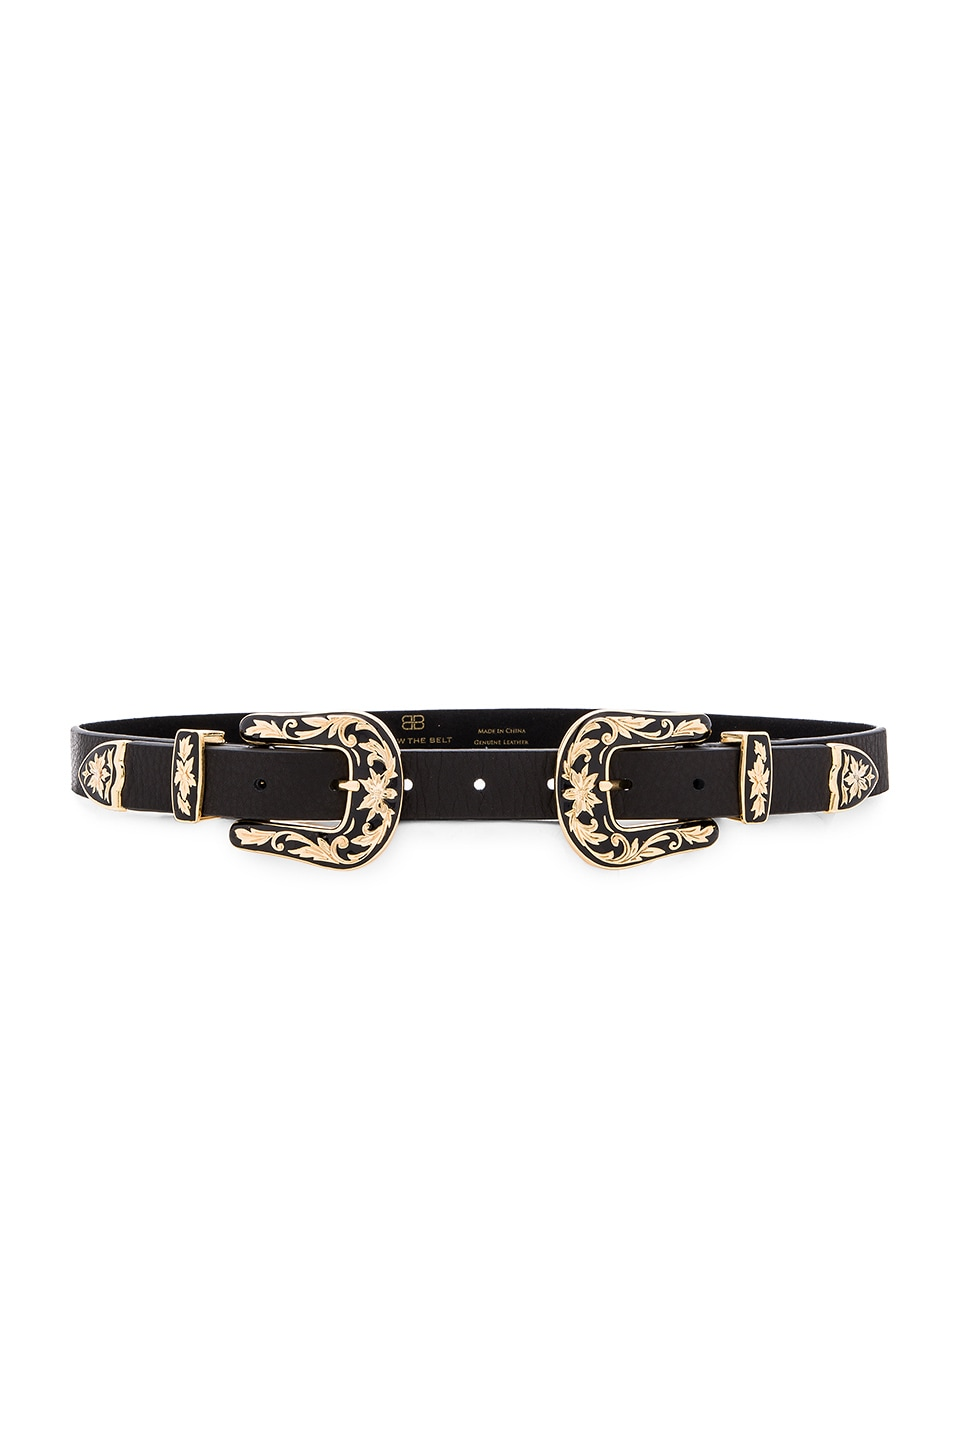 B-Low the Belt Baby Bri Bri Enamel Hip Belt in Black & Gold